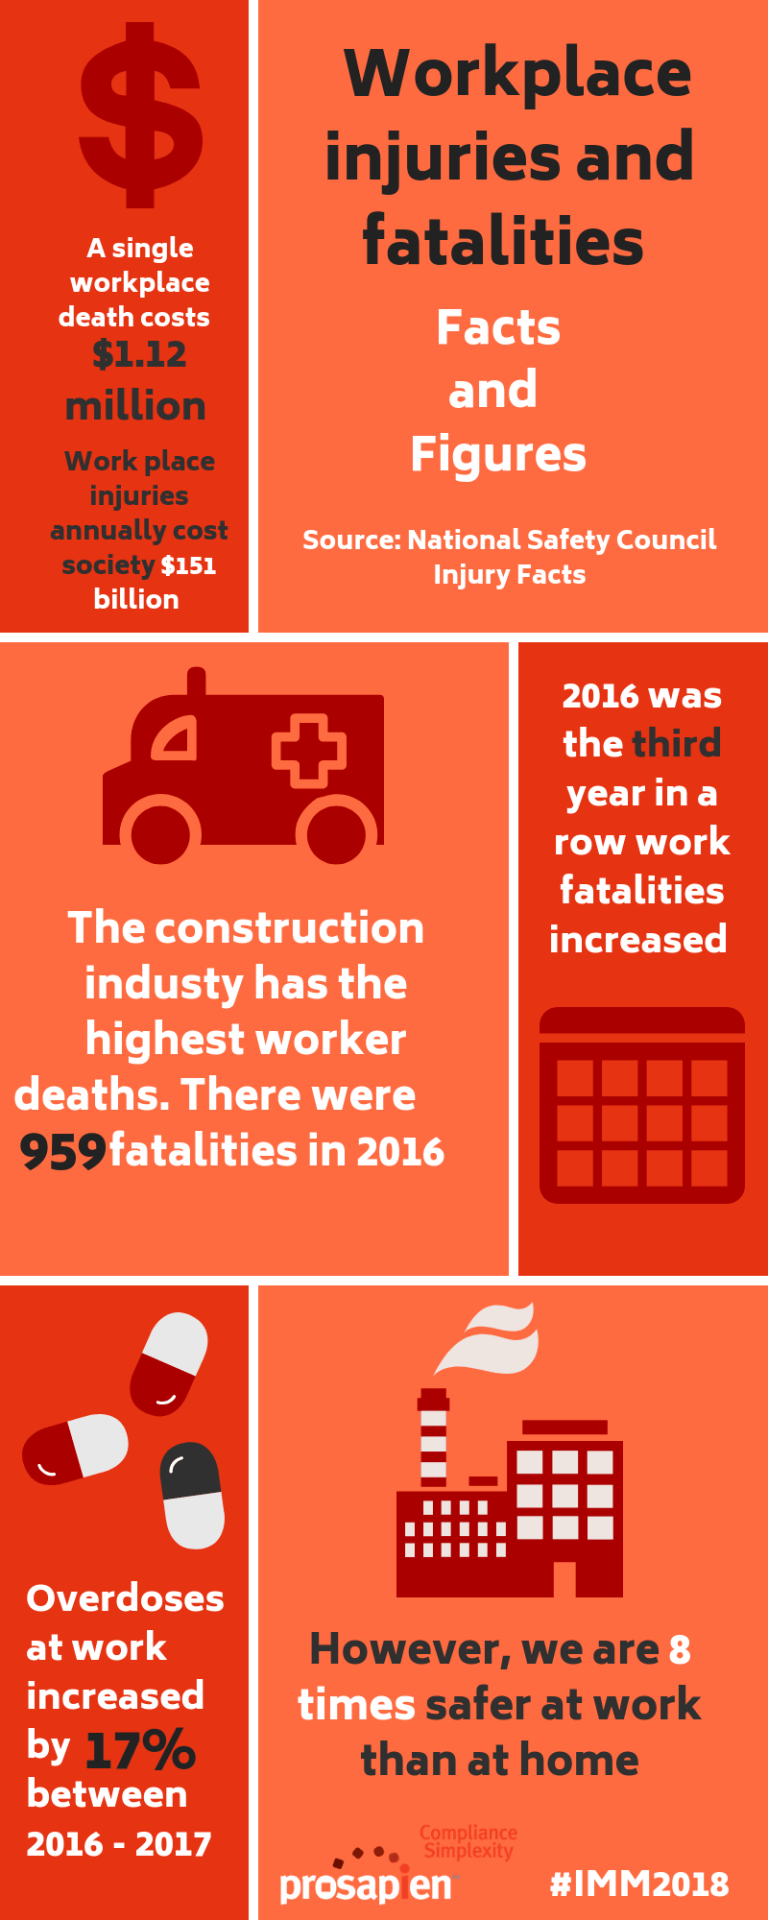 Workplace injuries and fatalities are on the rise.